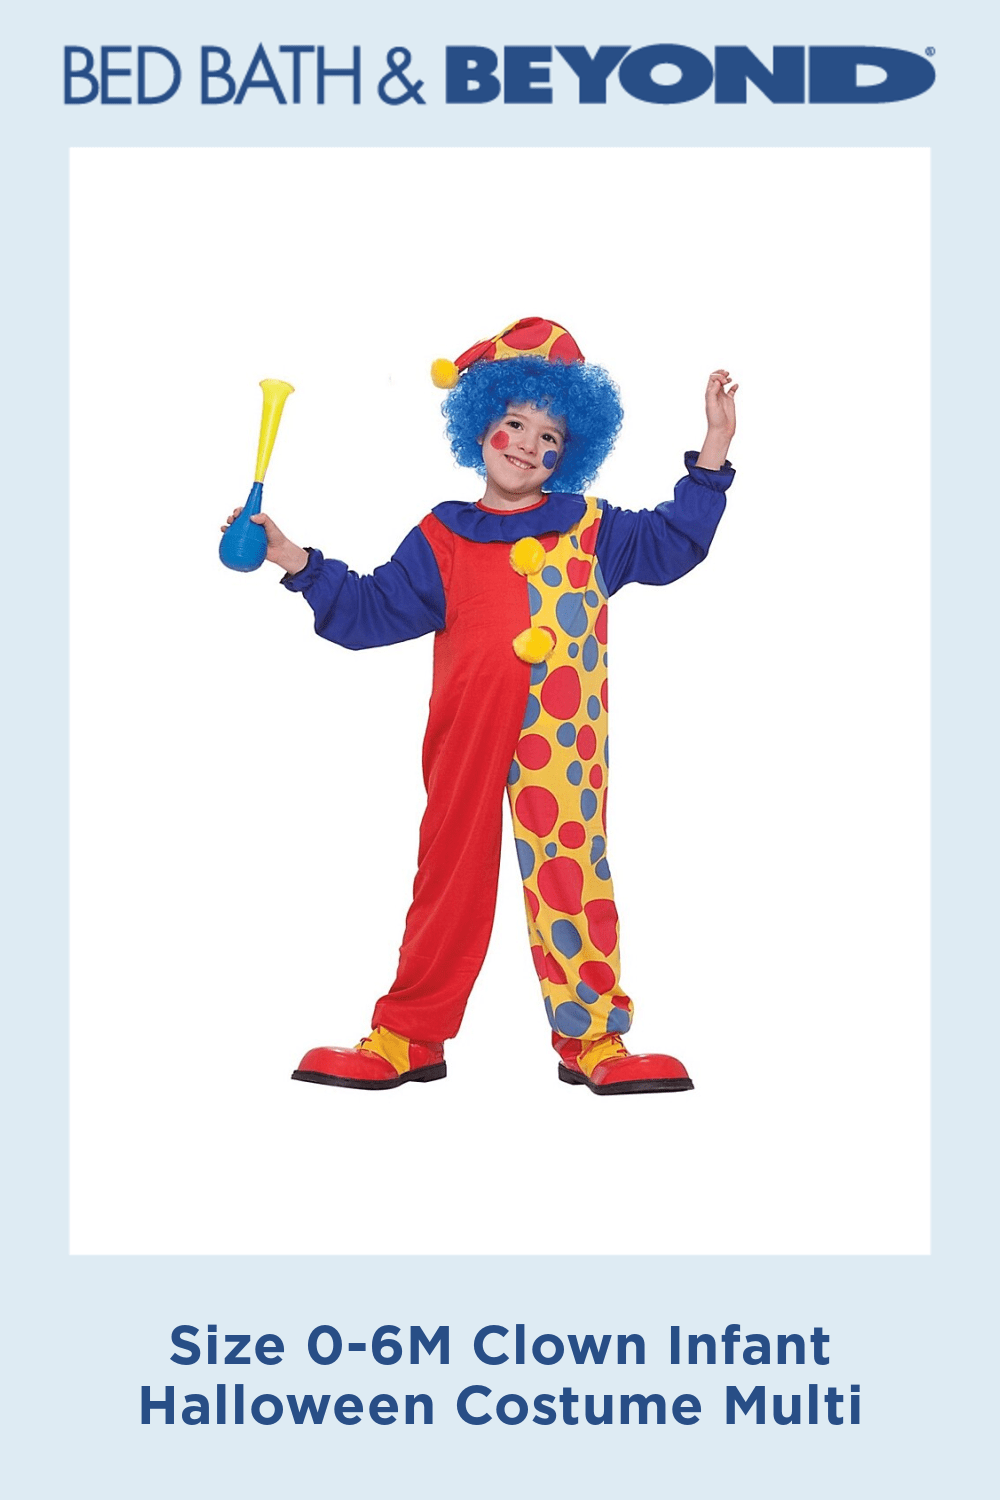 Size 0-6M Clown Infant Halloween Costume Multi